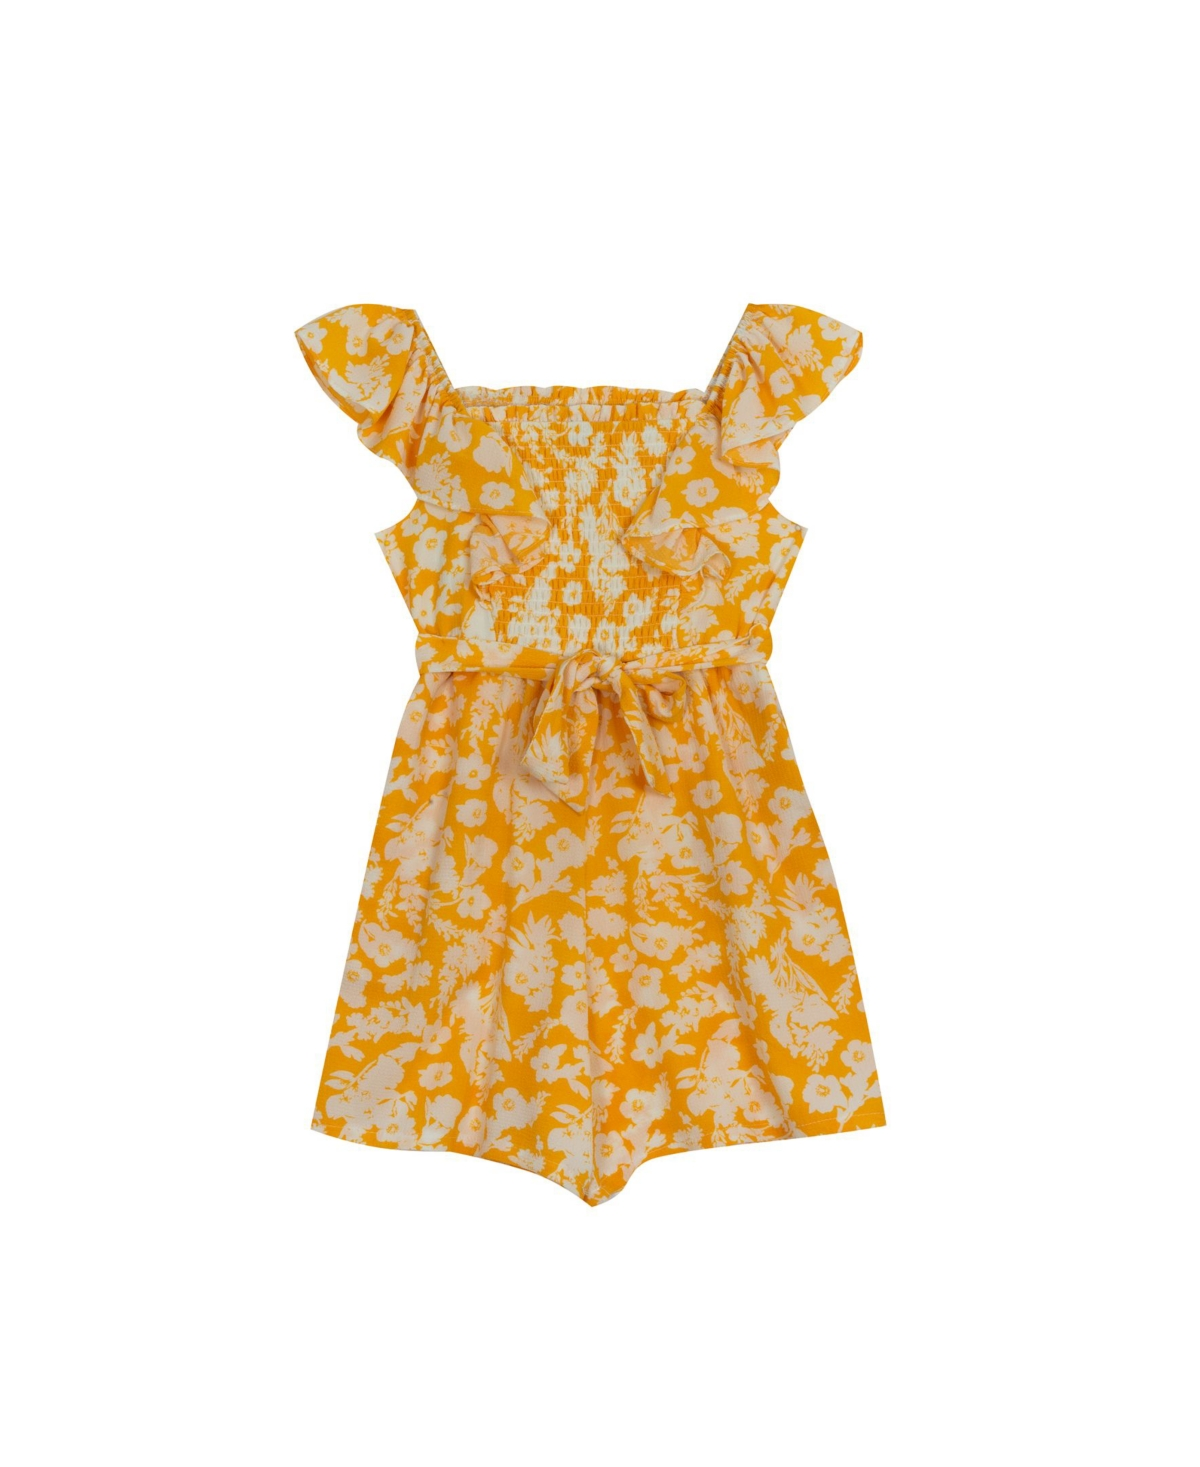 19165808 fpx - Kids & Baby Clothing